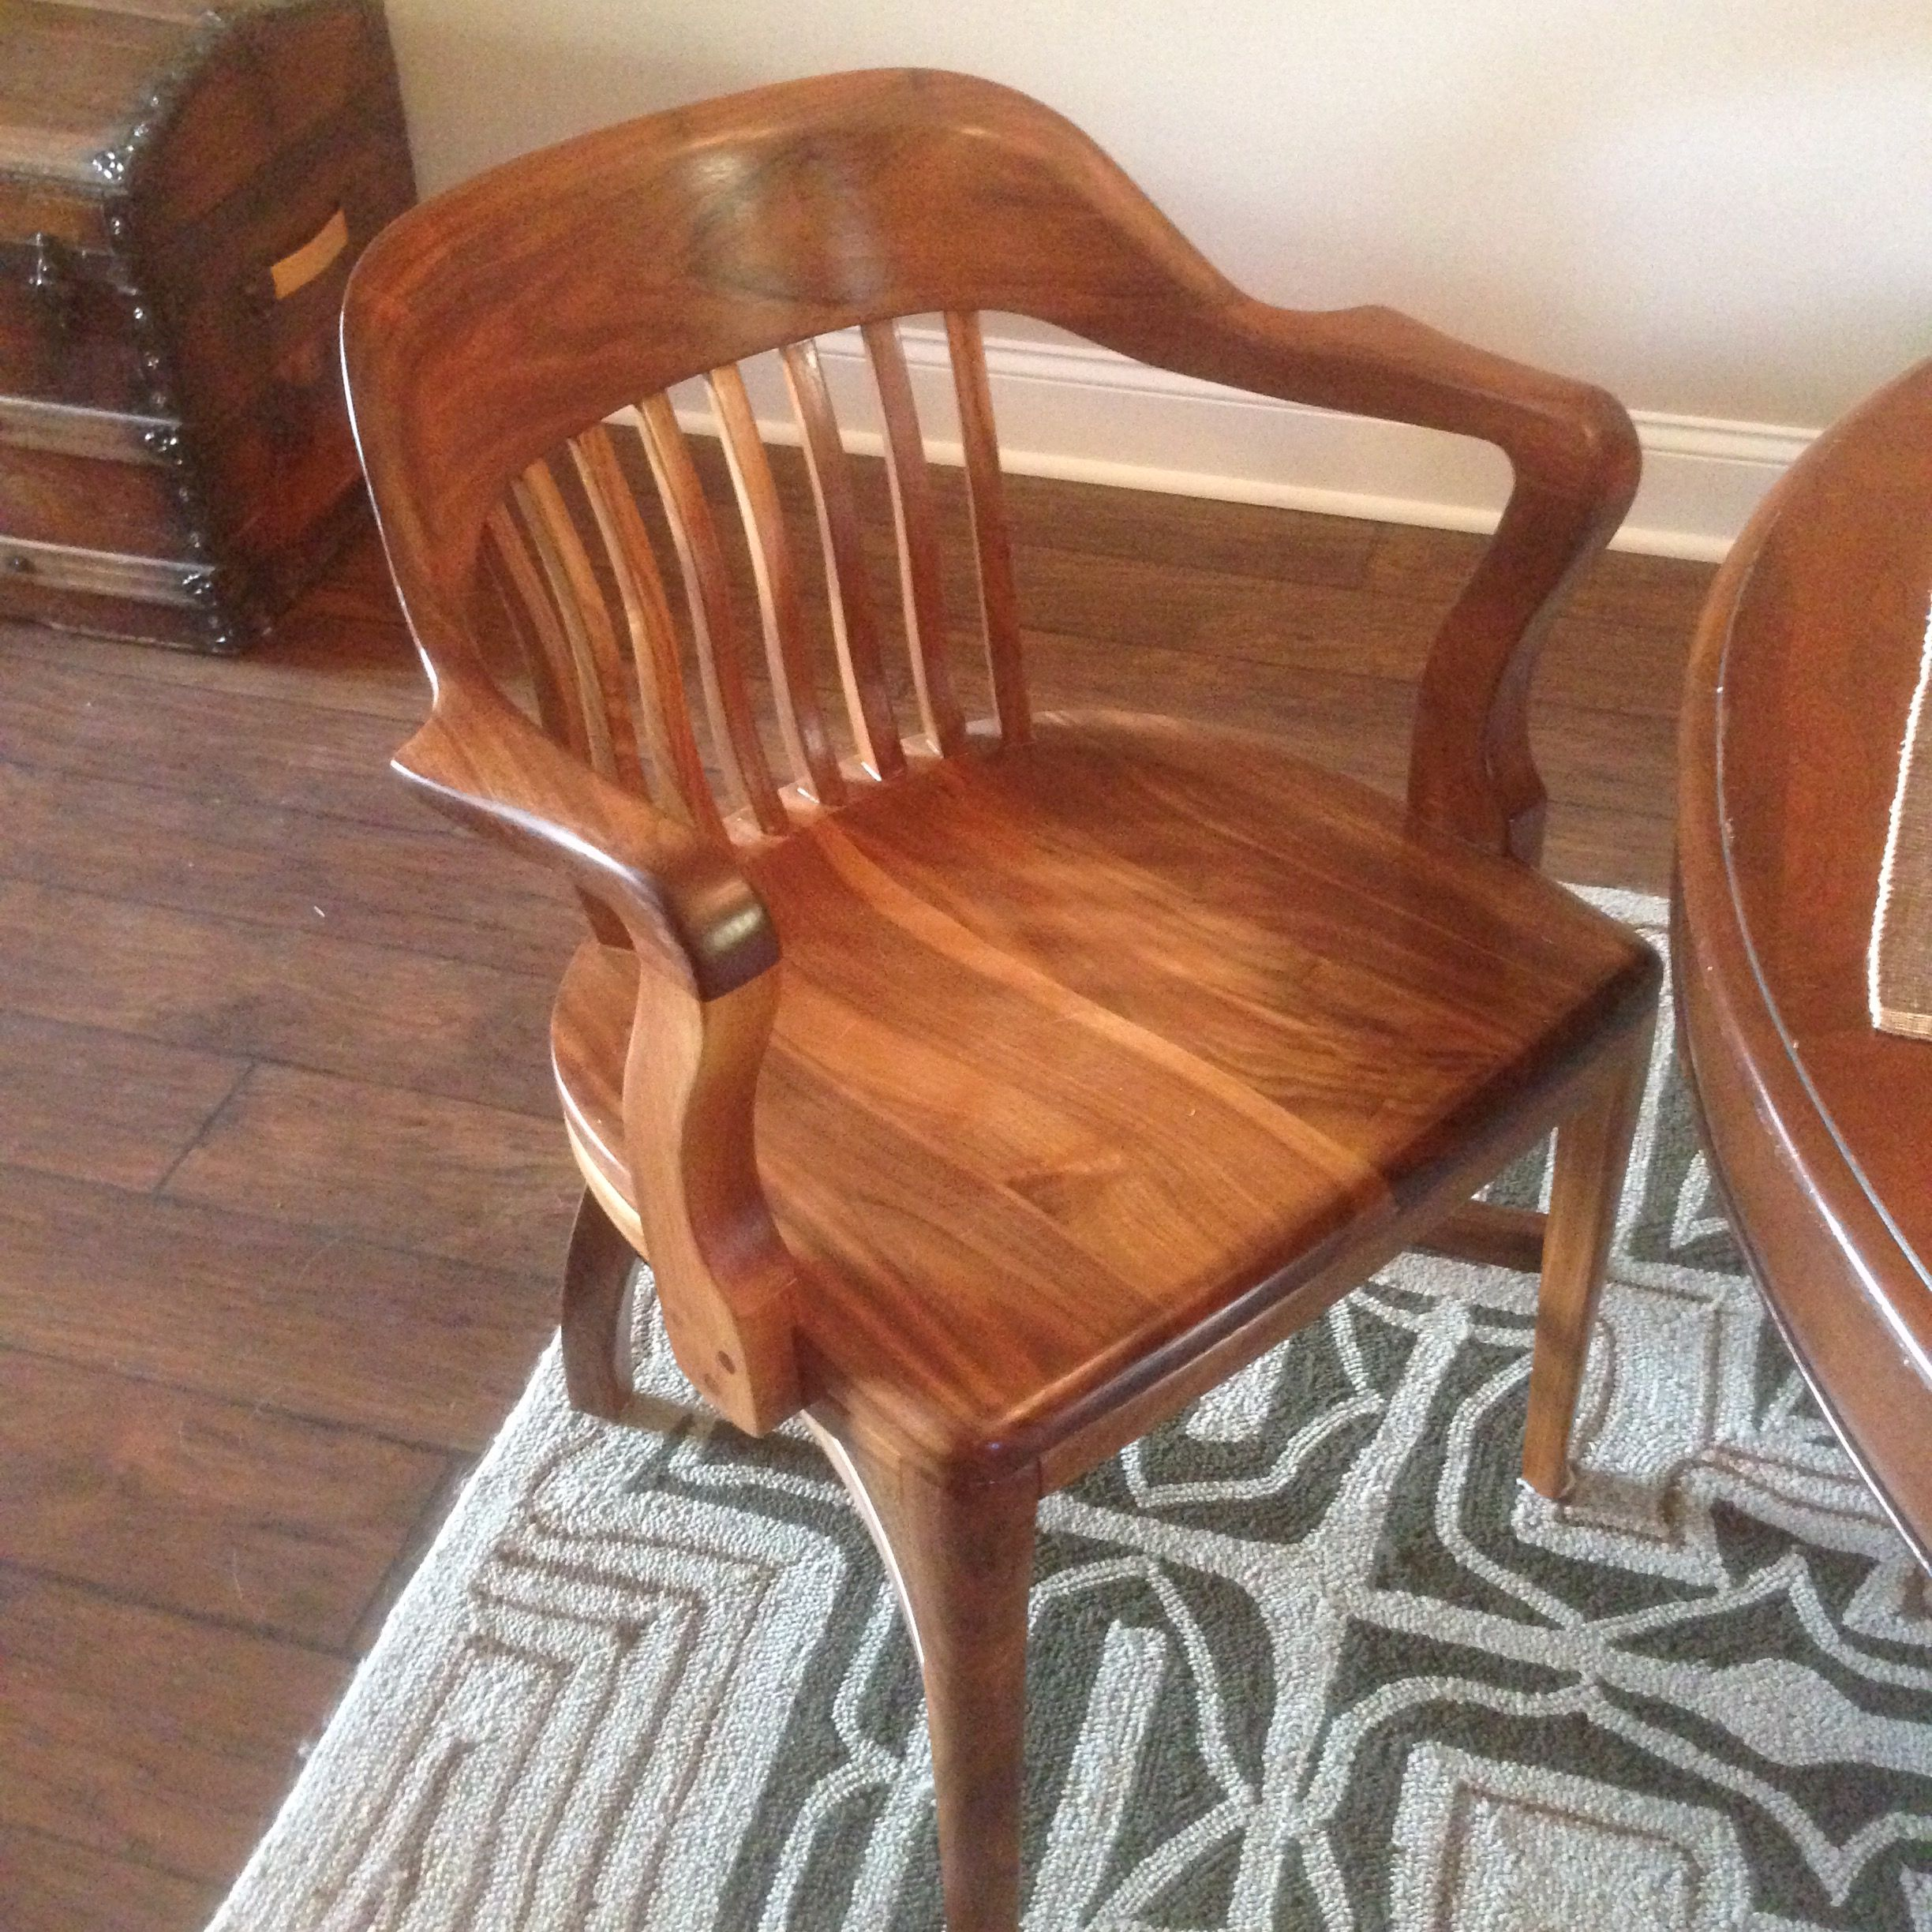 Wooden Bankers Chair My Refinished Johnson Chair Company Classic Banker S Chair